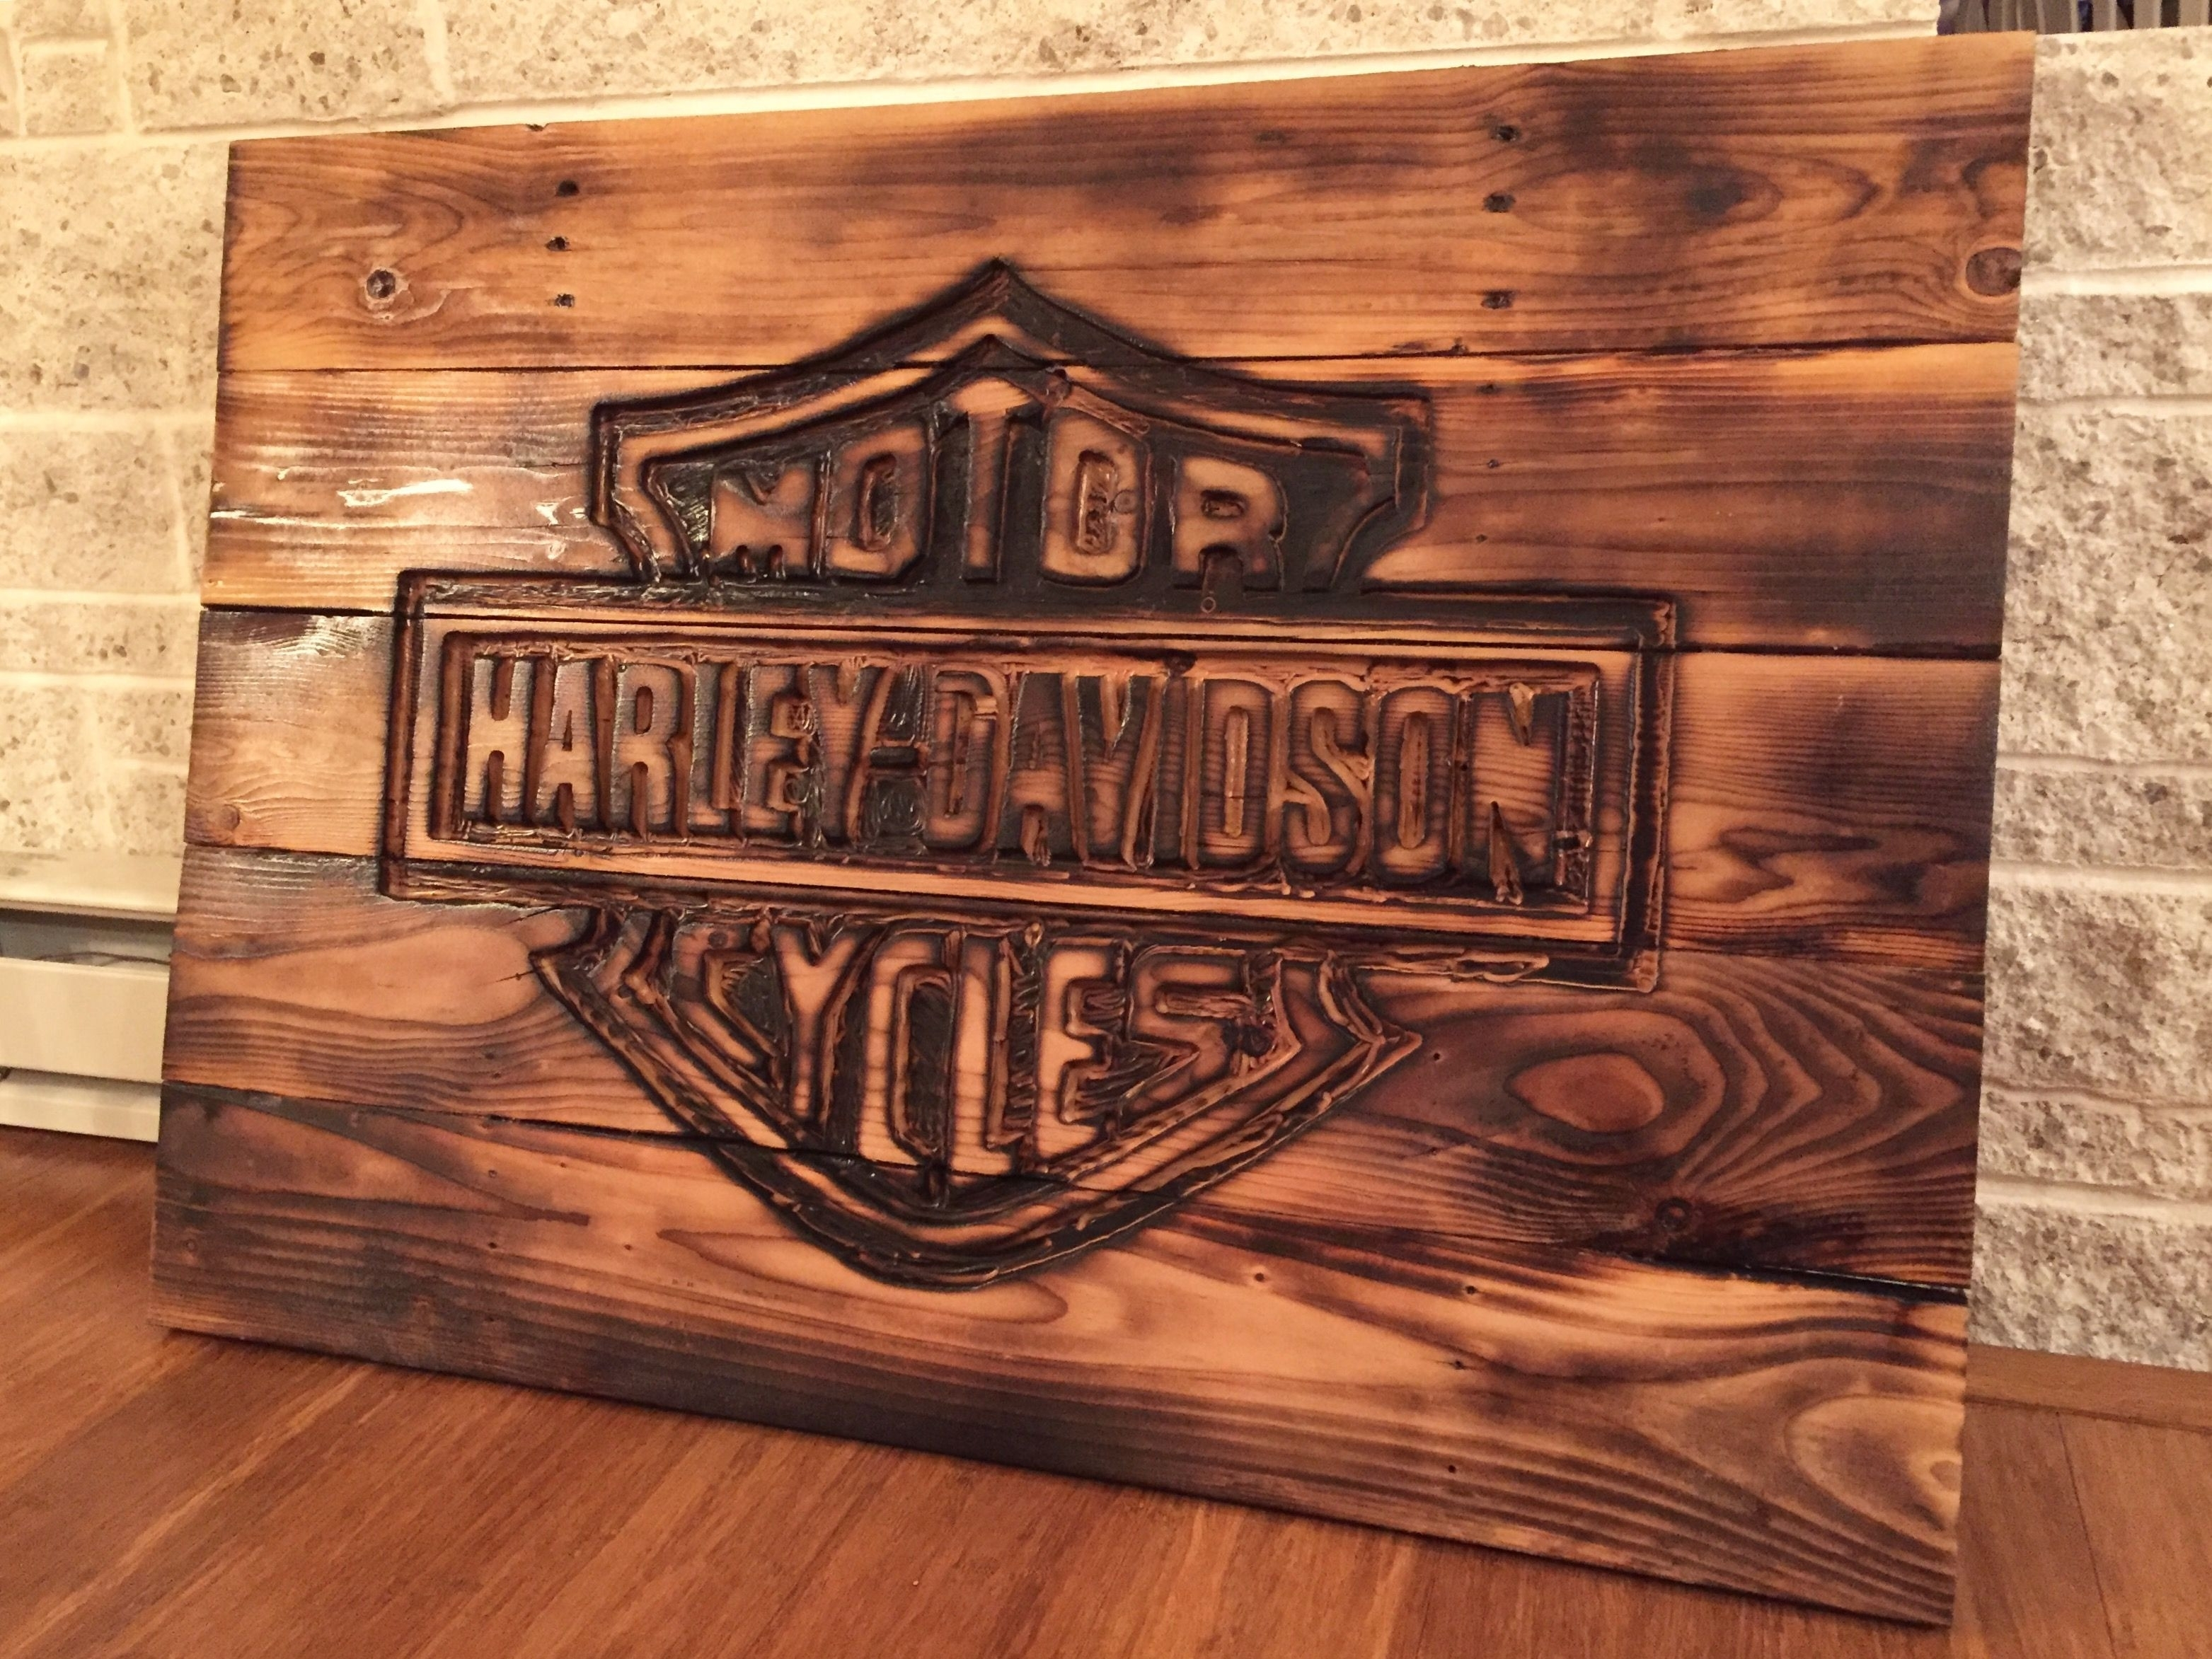 Harley Davidson Sign Made From Pallets Reclaimed Wood Scheme Of Pertaining To 2018 Harley Davidson Wall Art (Gallery 8 of 20)